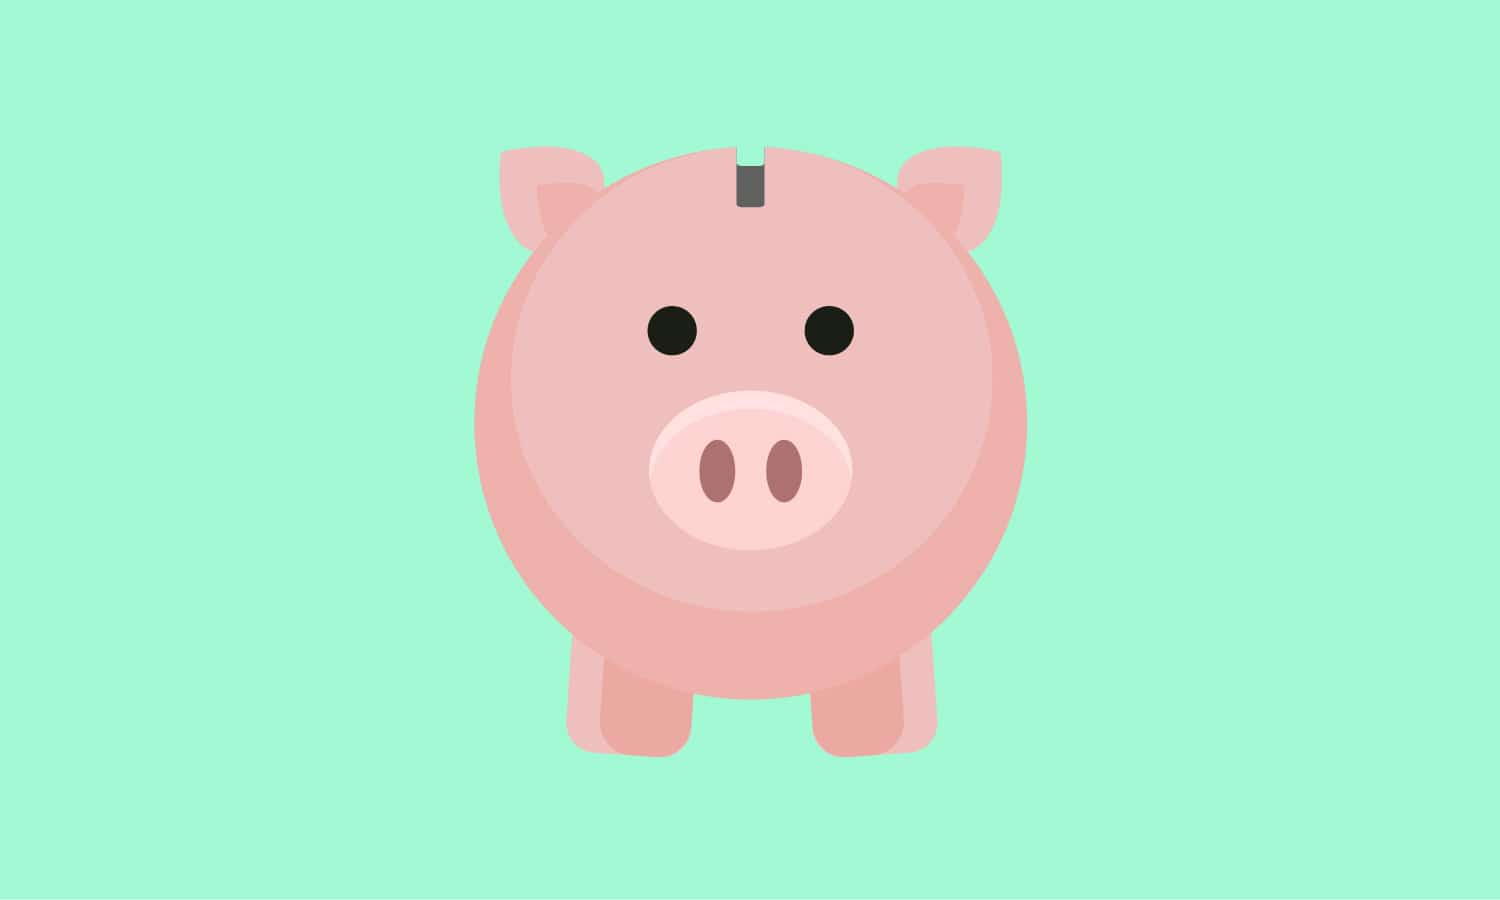 10 Tips to Finance Your Startup On a Shoestring Budget